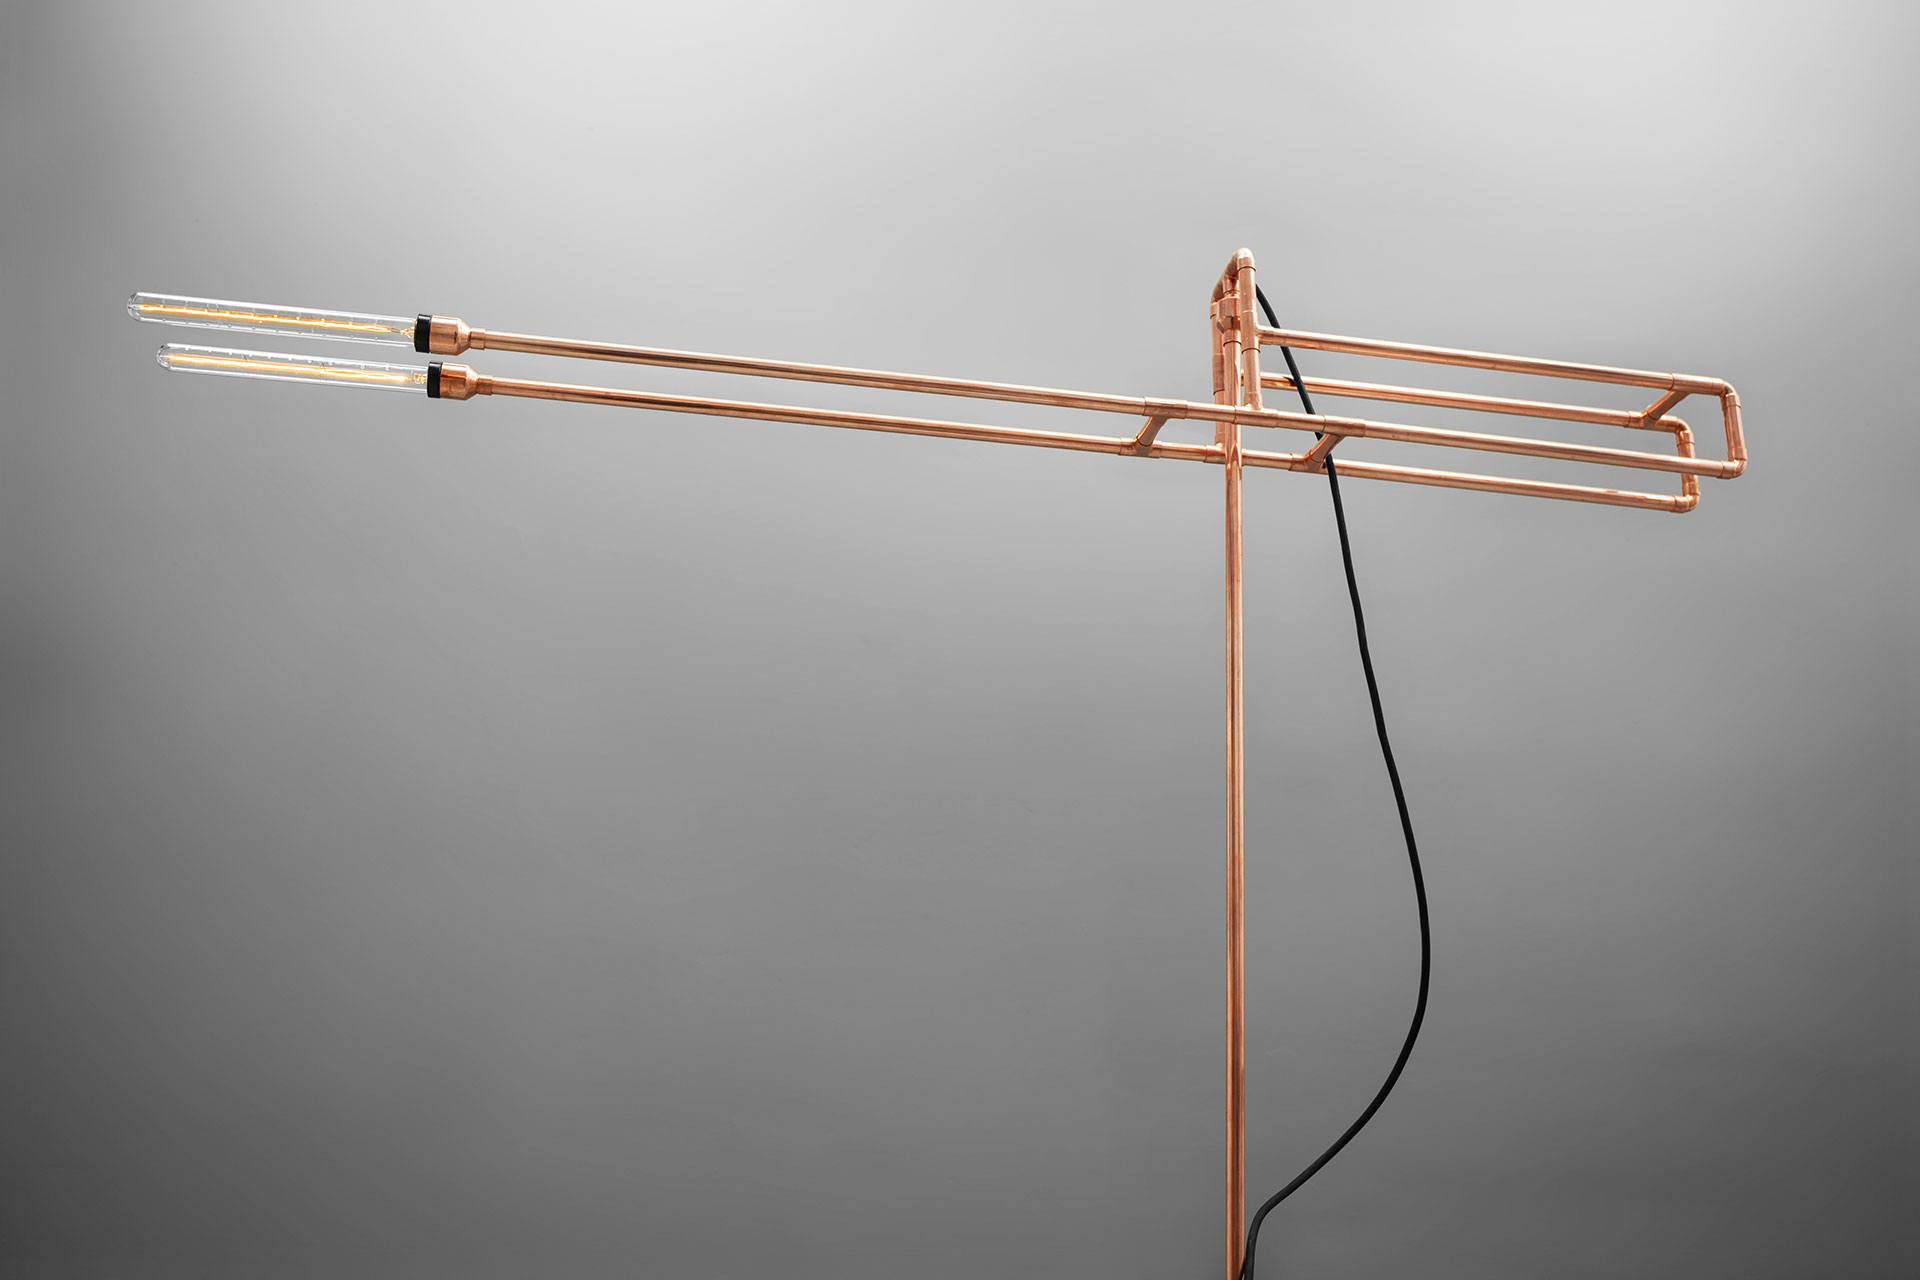 Conceptual design floor lamp in trendy copper or gold brass inspired by copper pipe art